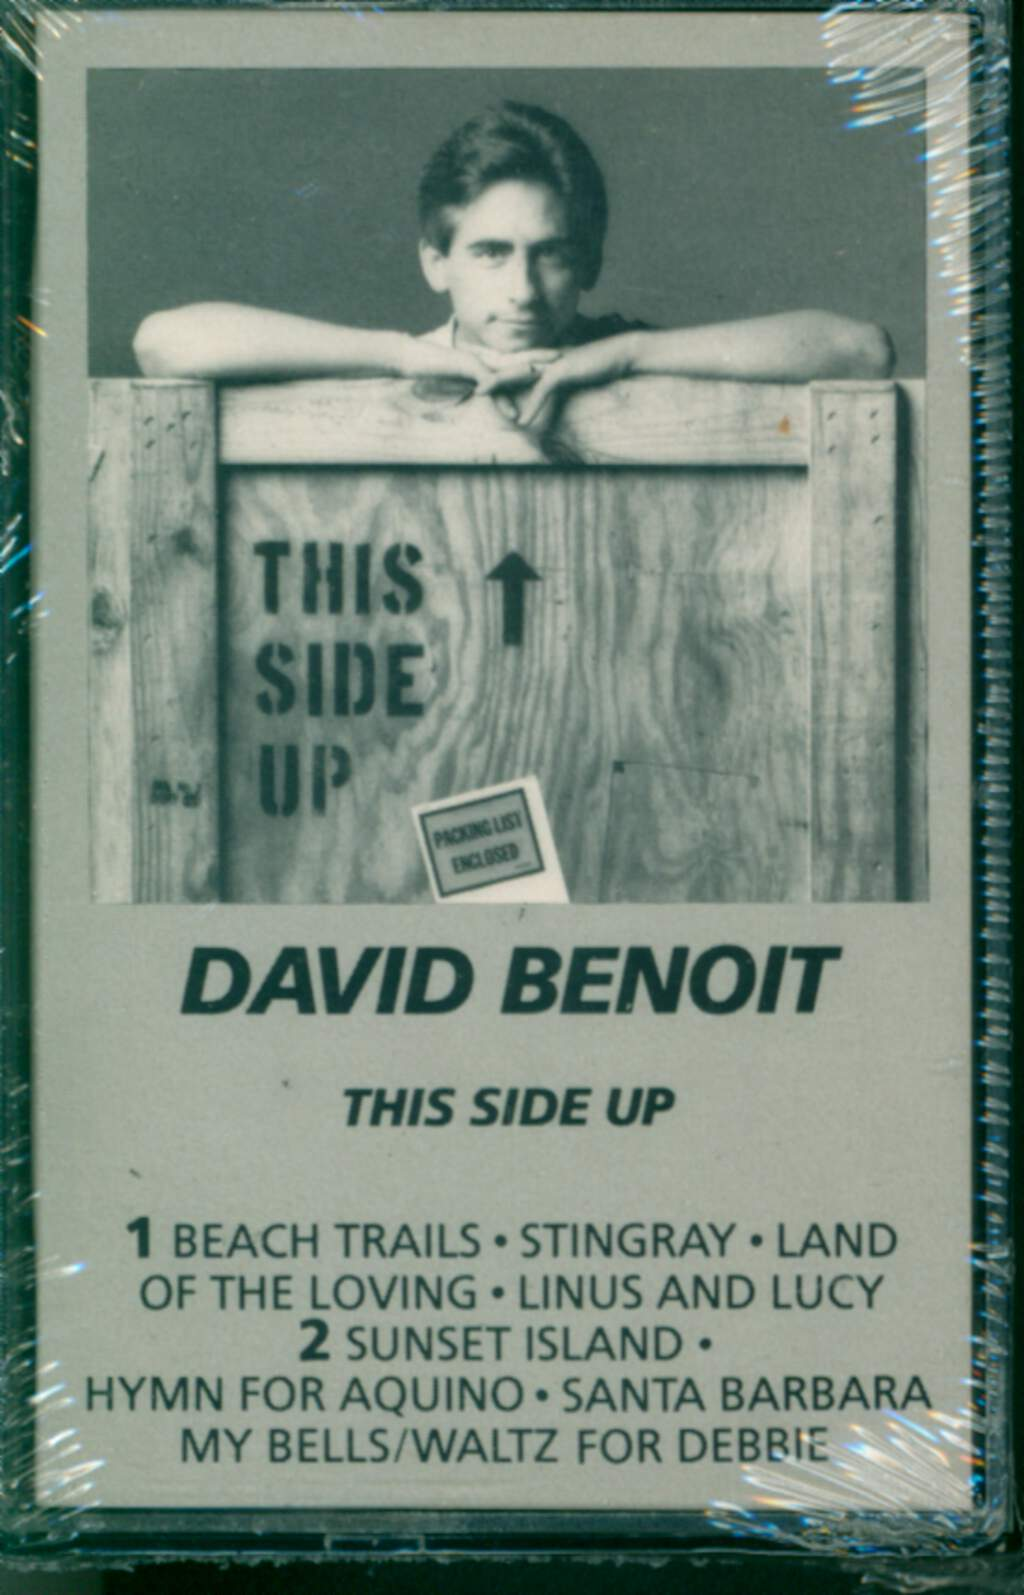 David Benoit: This Side Up, Compact Cassette